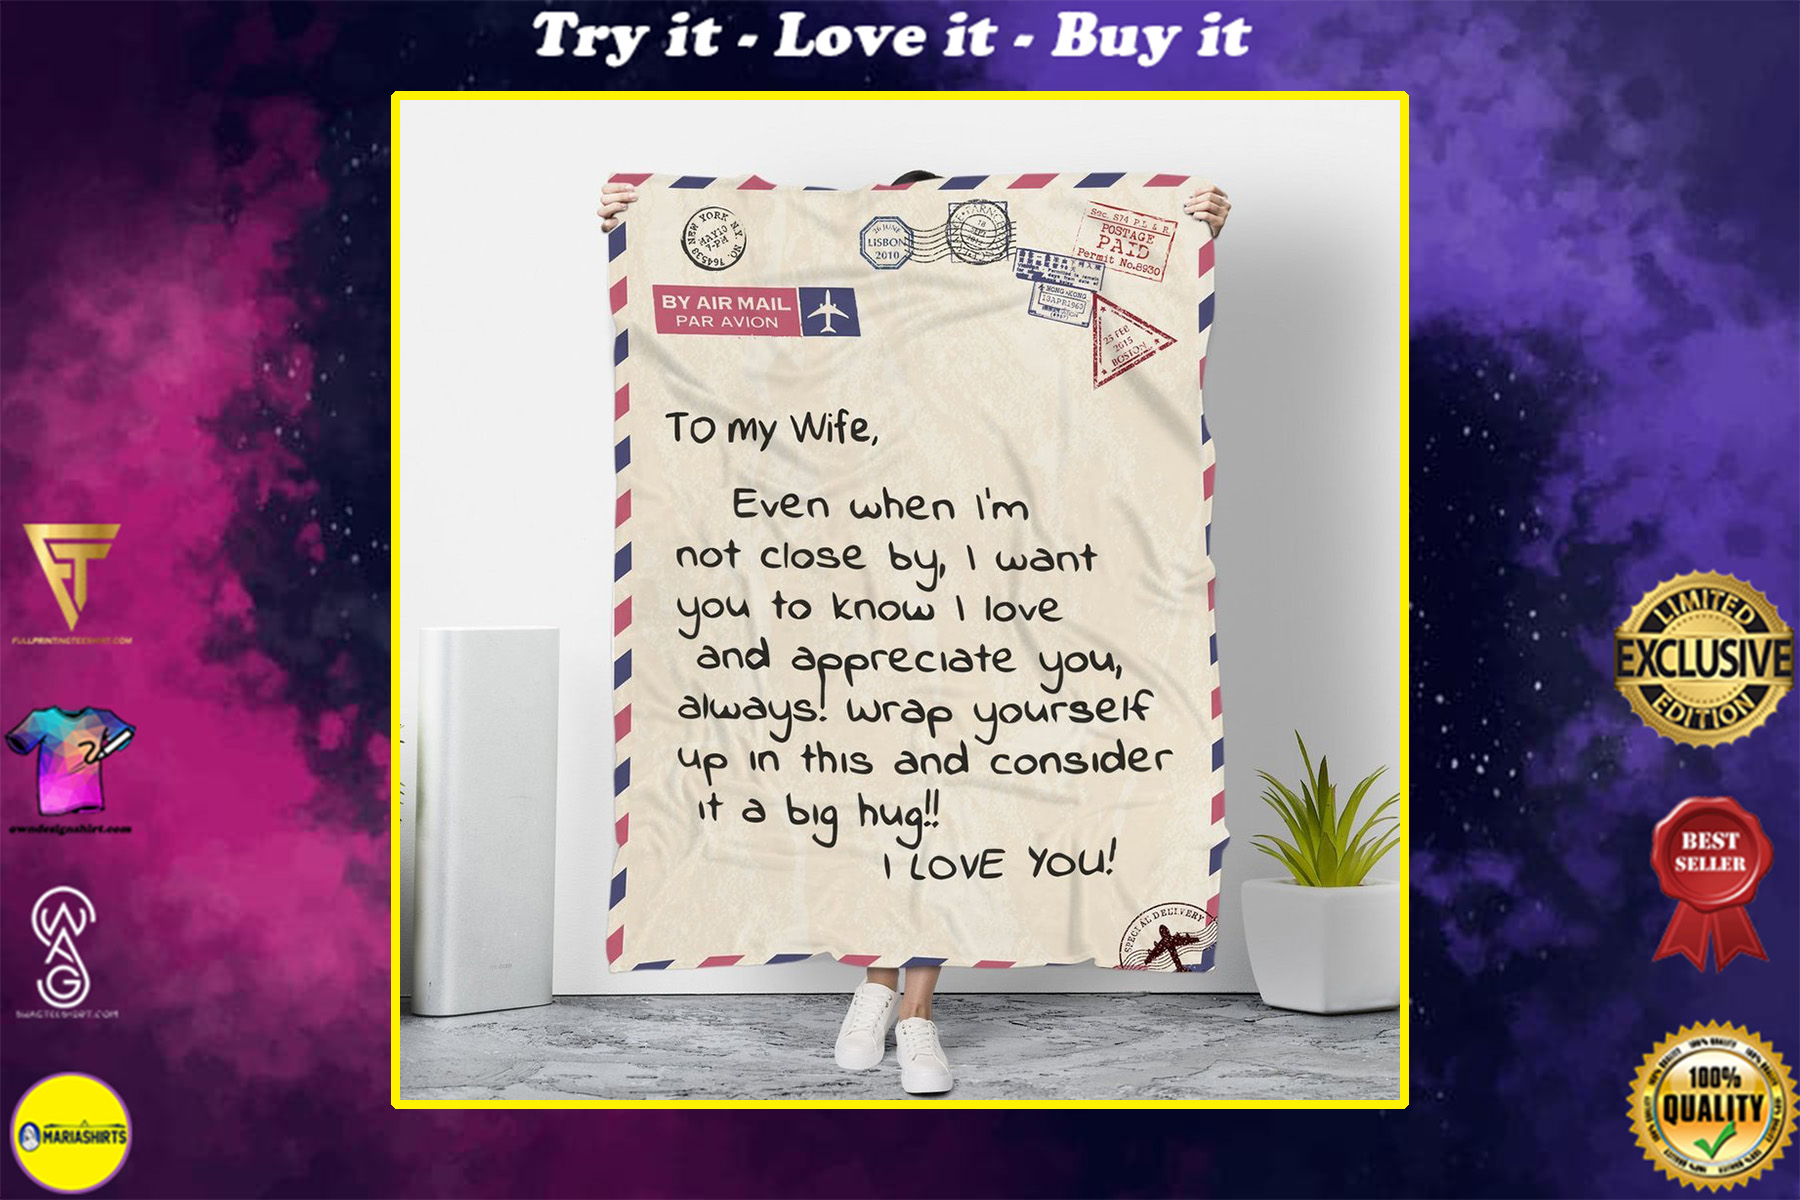 by air mail to my wife wrap yourself up with this i love you blanket